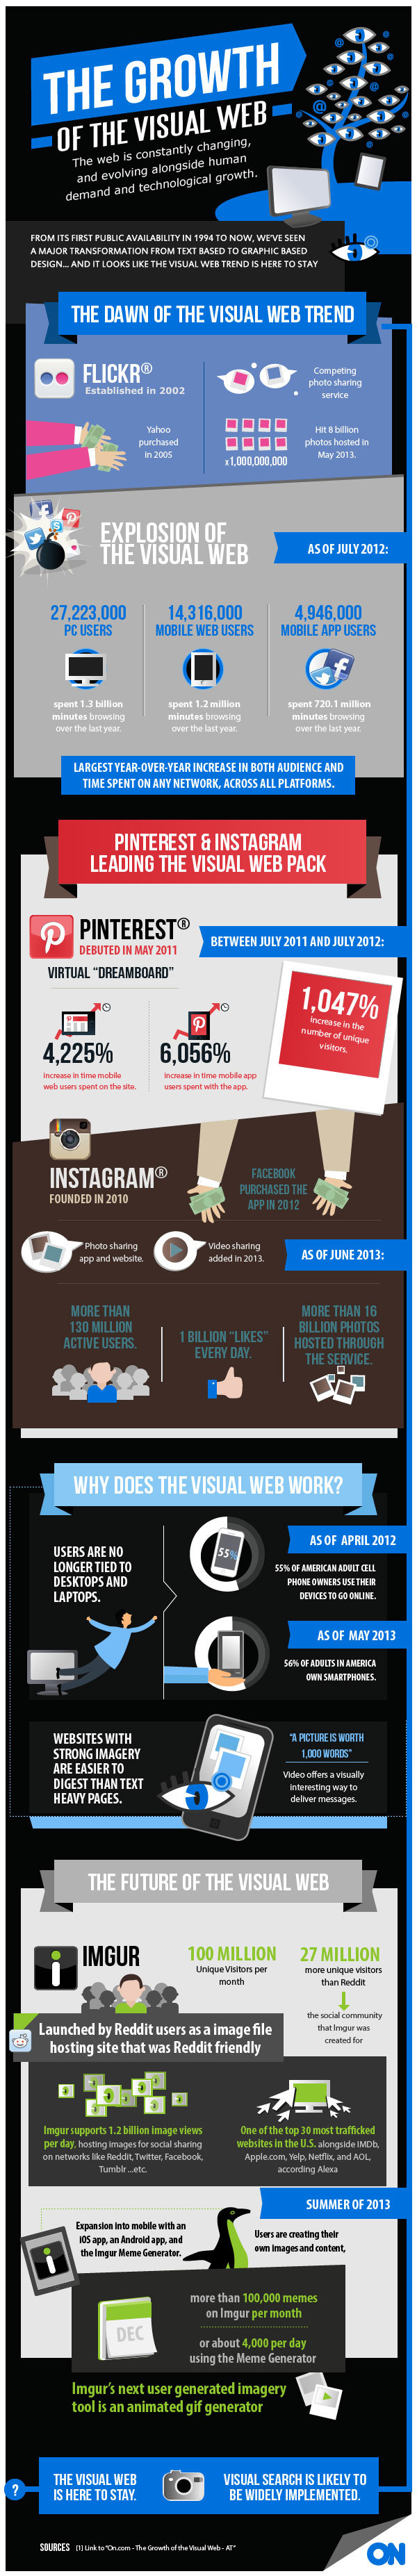 The Facts and Figures on the Power of Visual Content Marketing